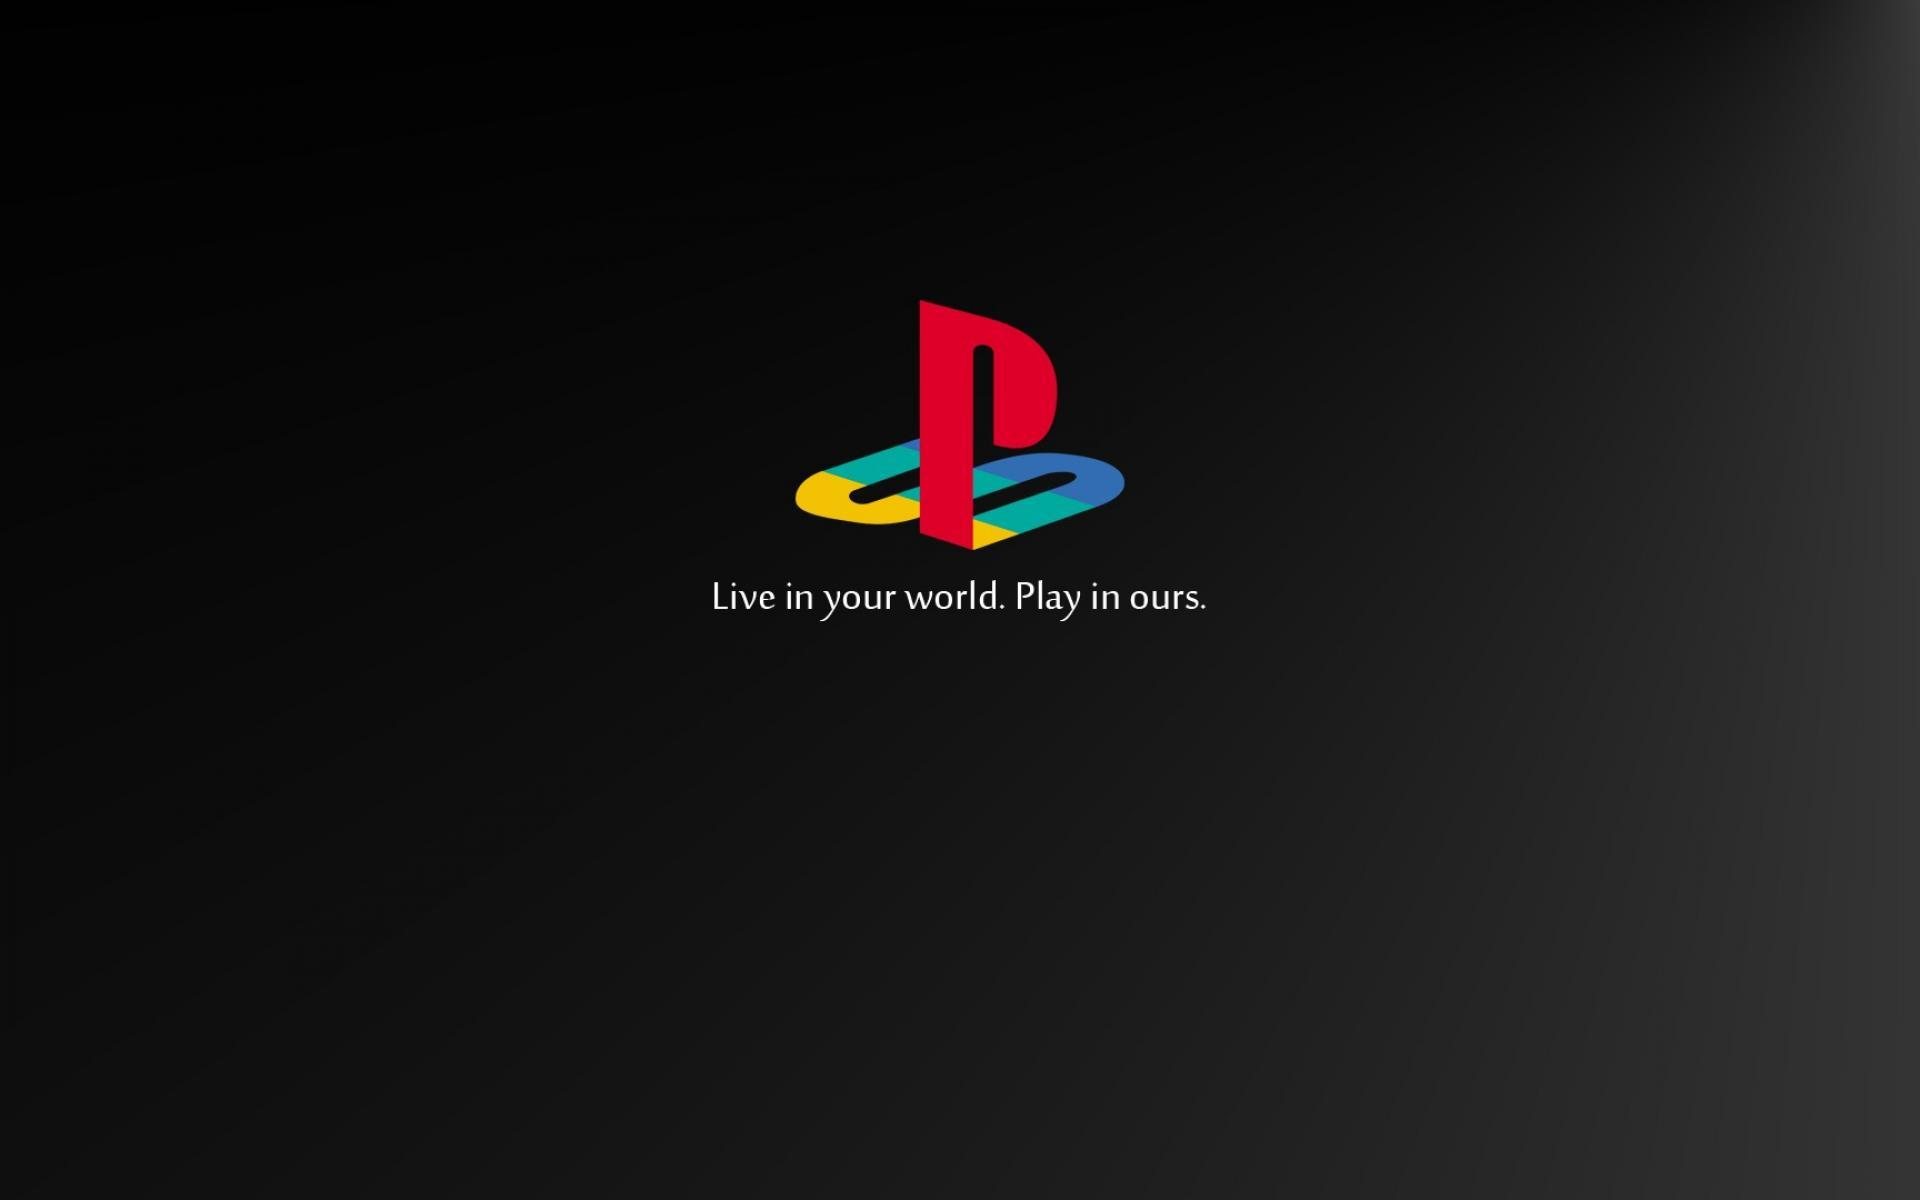 Playstation Live Wallpaper